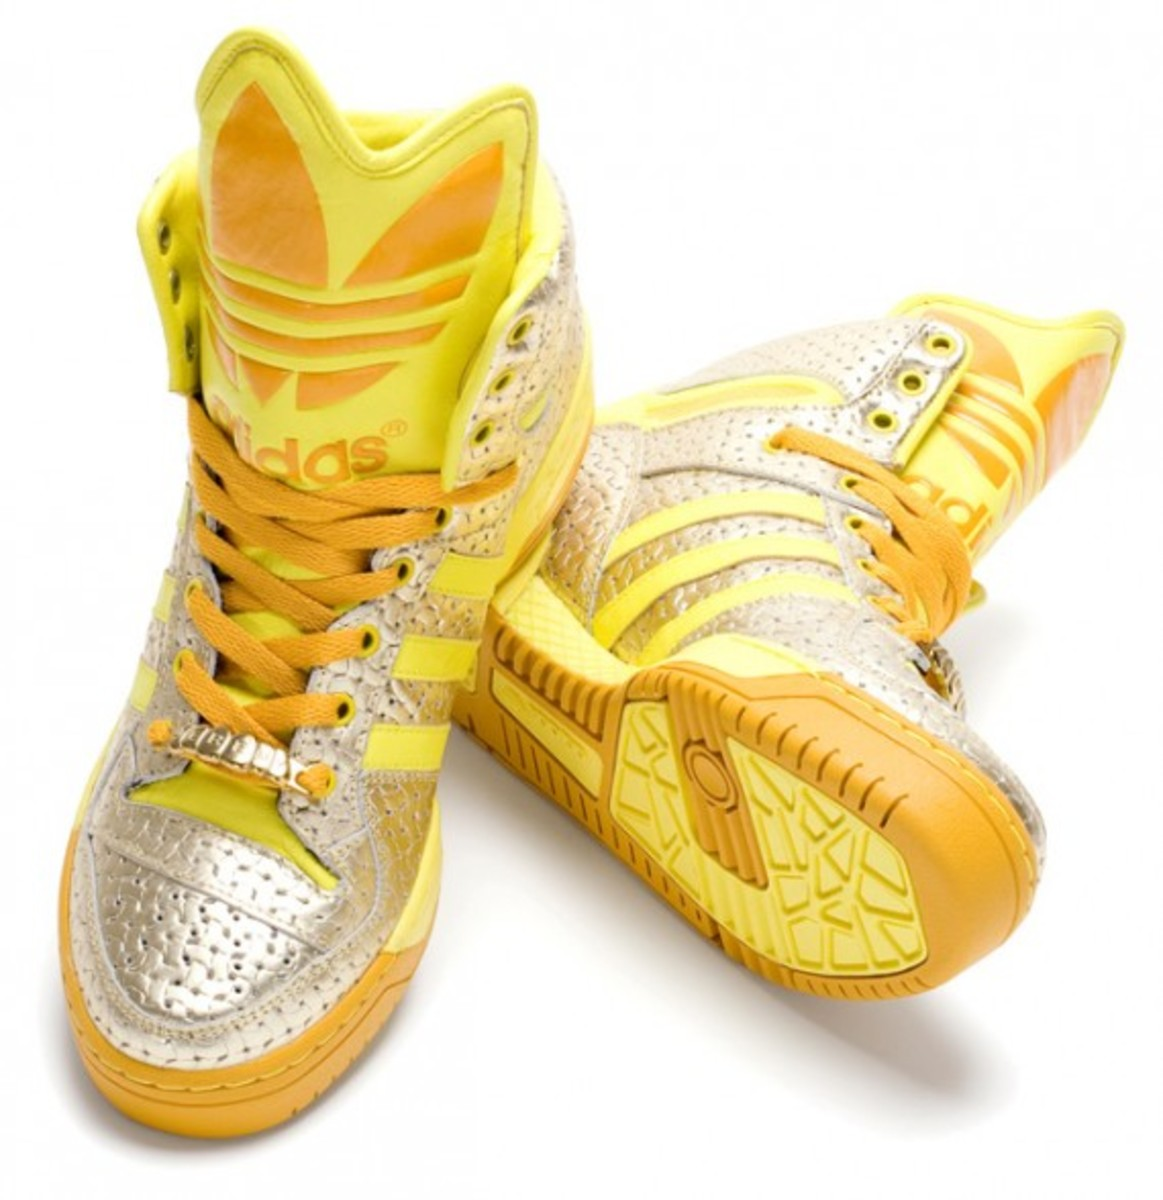 jeremy_scott_adidas_originals_obyo_ss10_footwear_7